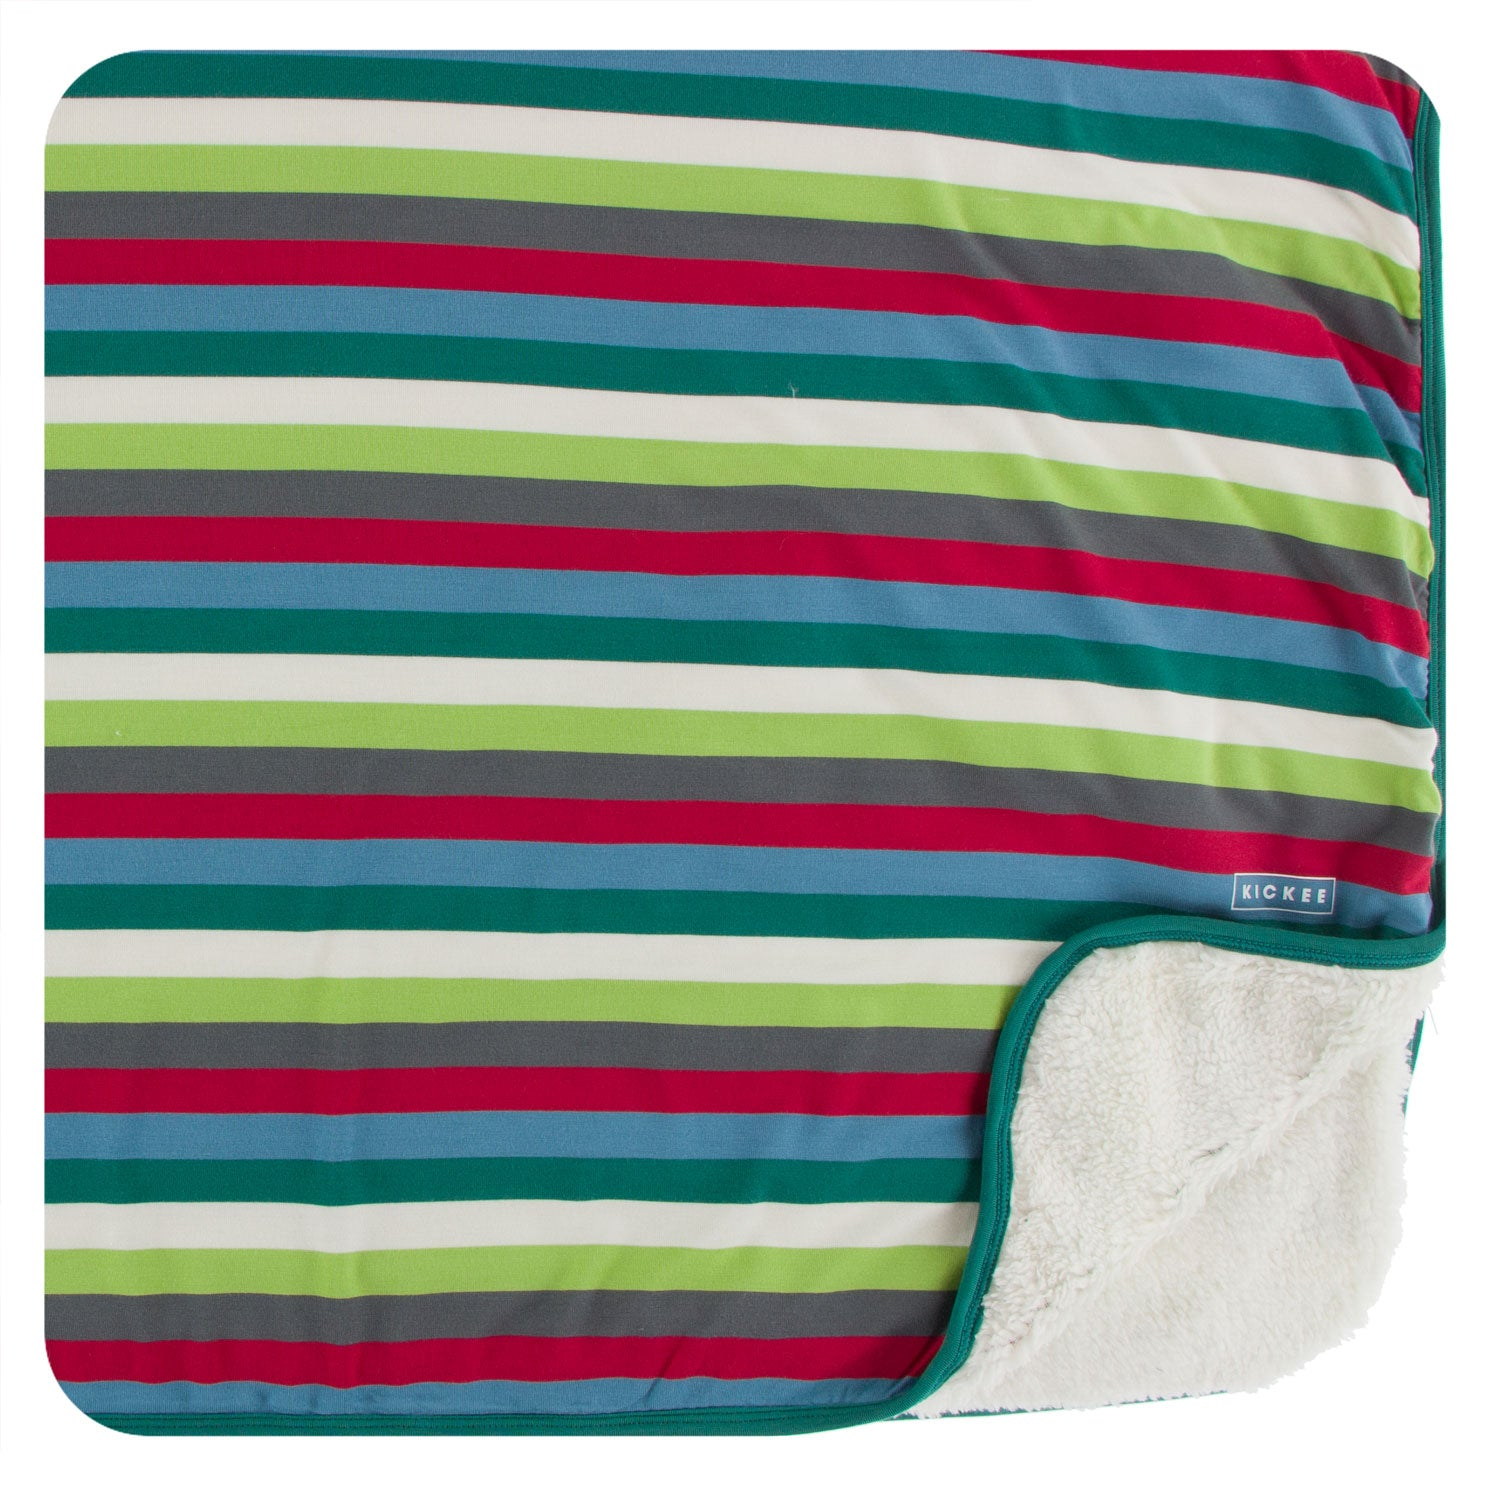 KicKee Pants Sherpa-lined Toddler Blanket - 2020 Multi Stripe